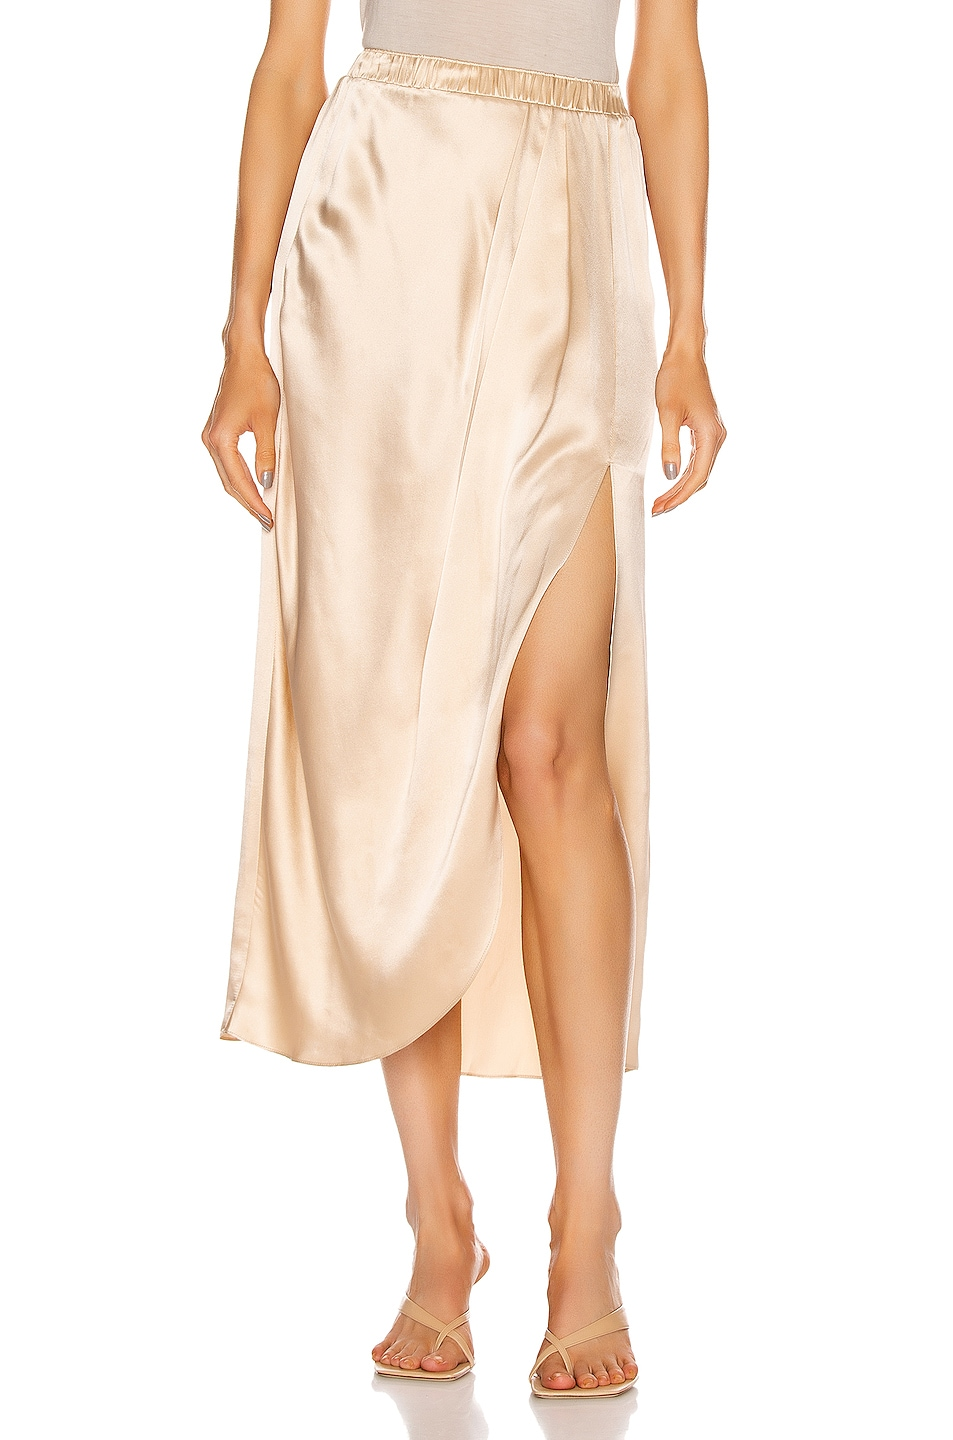 Image 1 of SABLYN Ariel Slit Skirt in Fawn